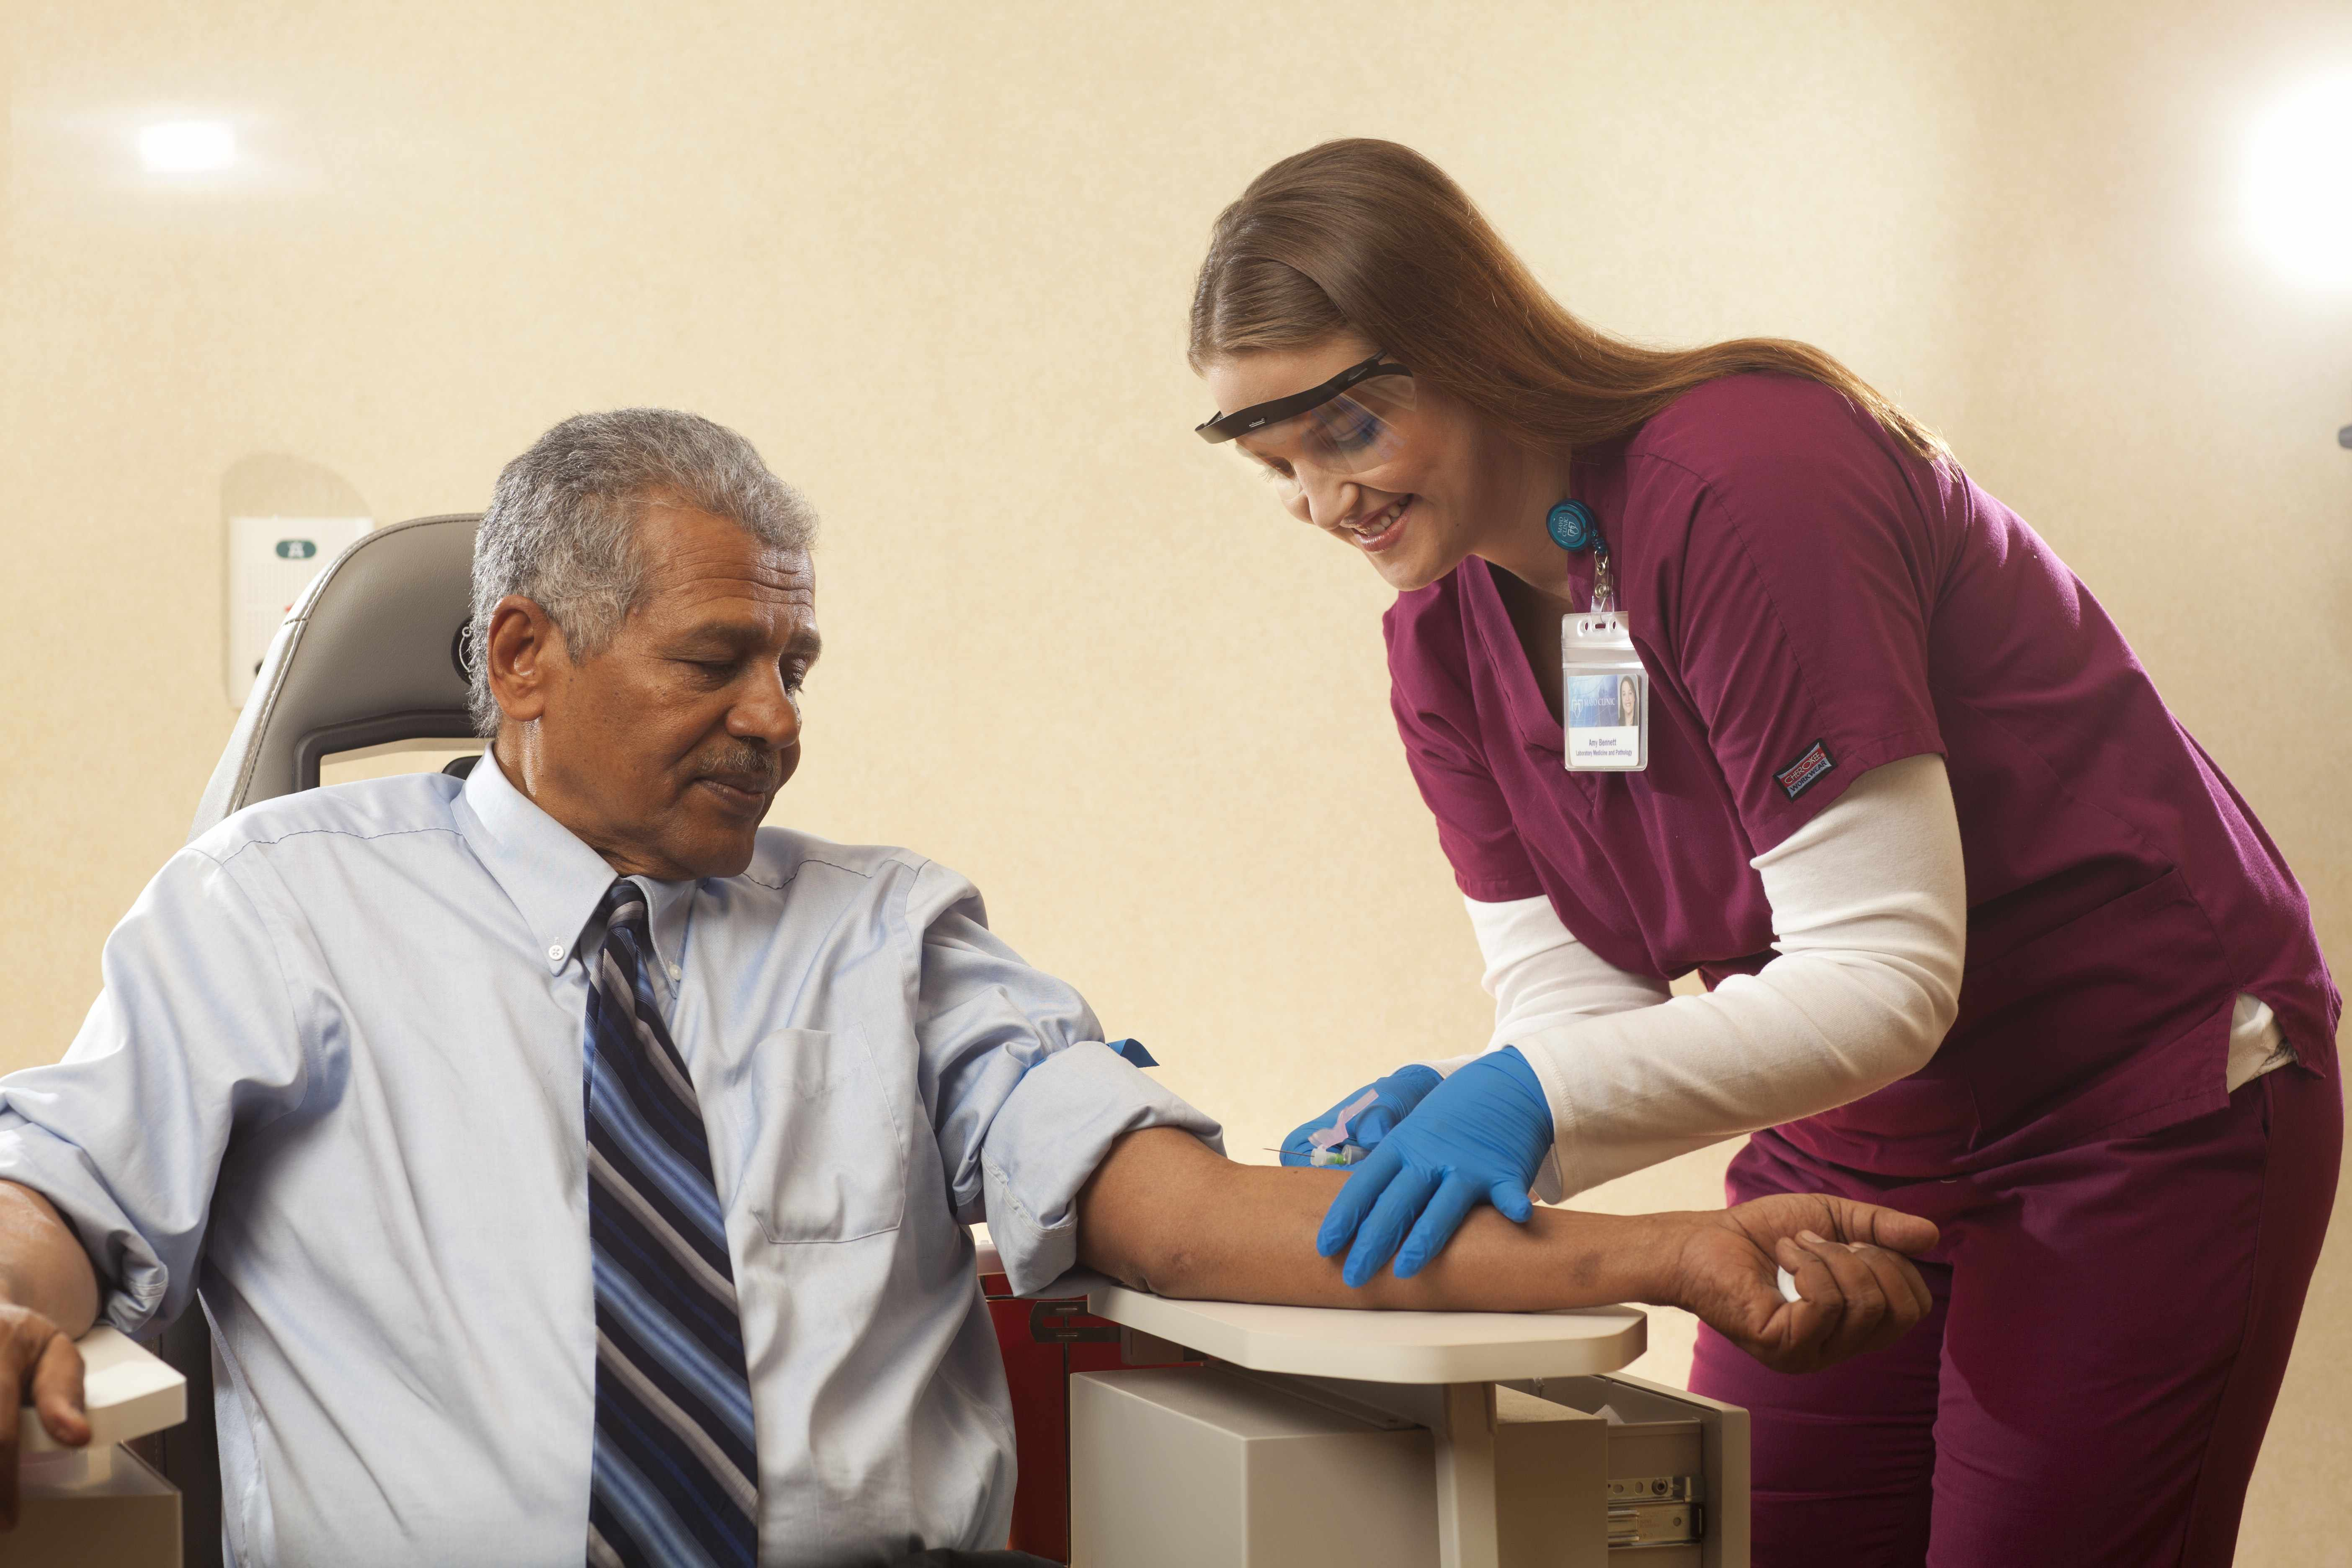 phlebotomist drawing blood from patient